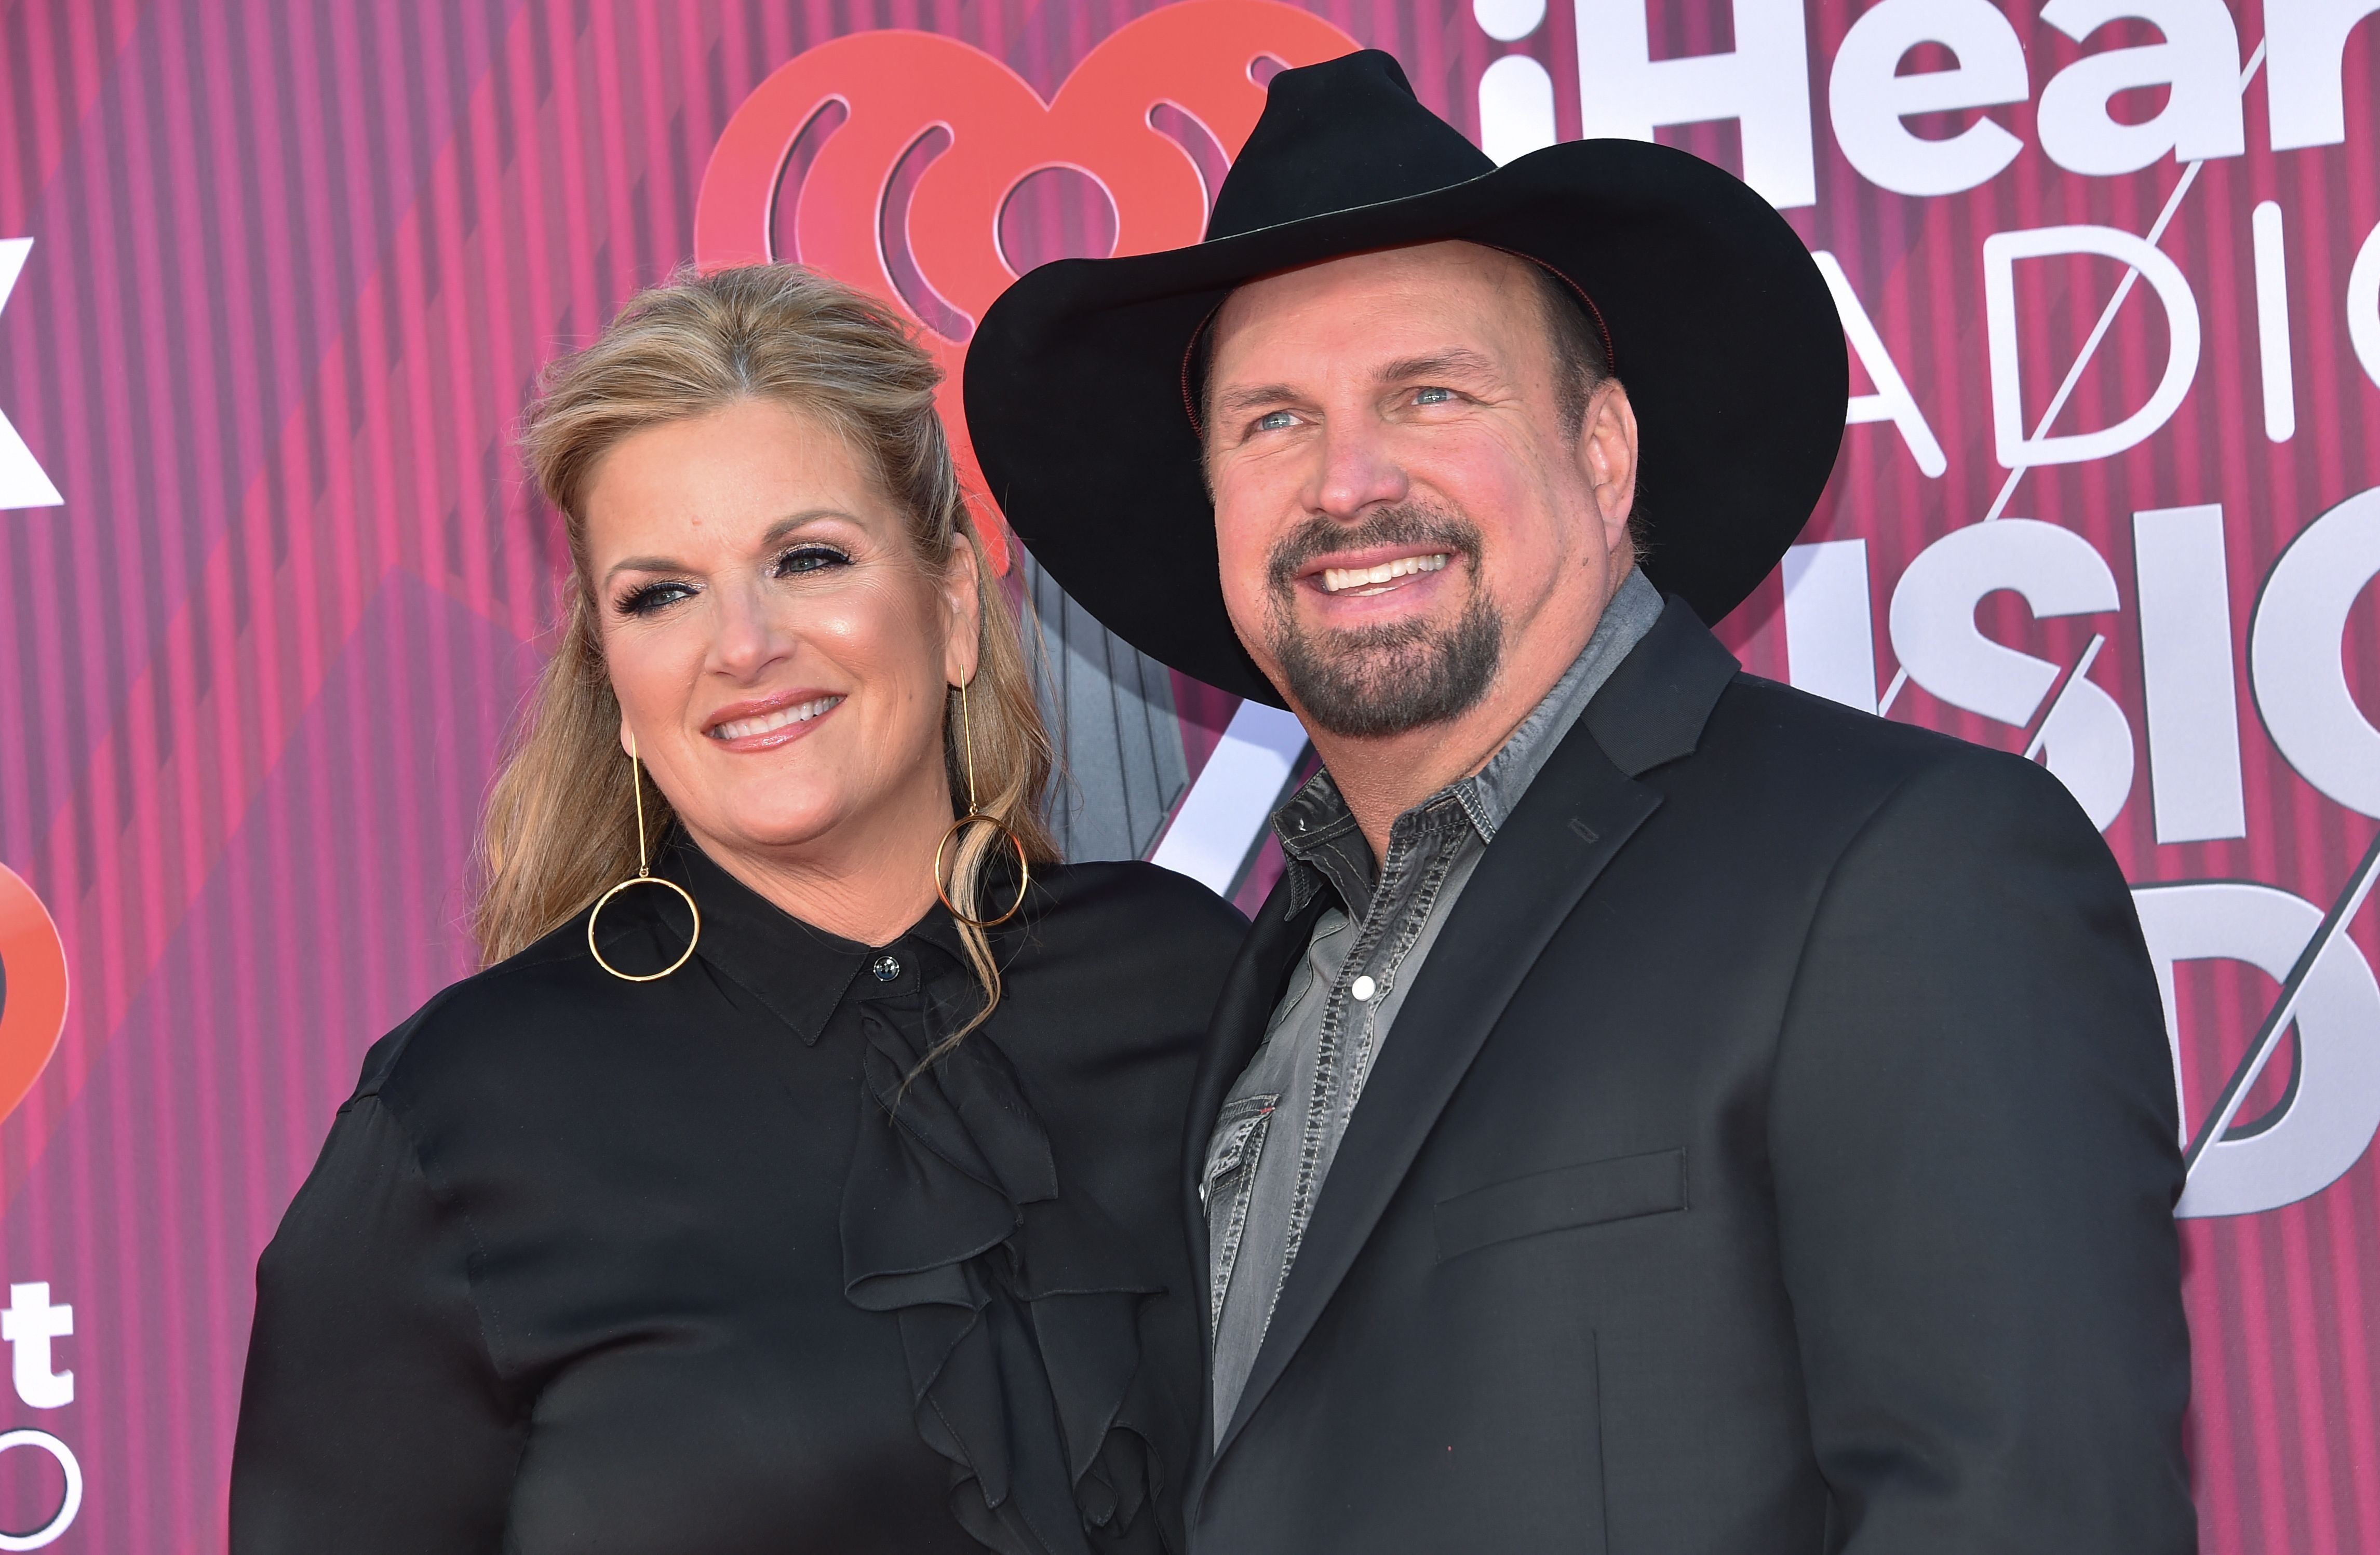 Garth Brooks And Trisha Yearwood Cbs Live Concert How To Watch